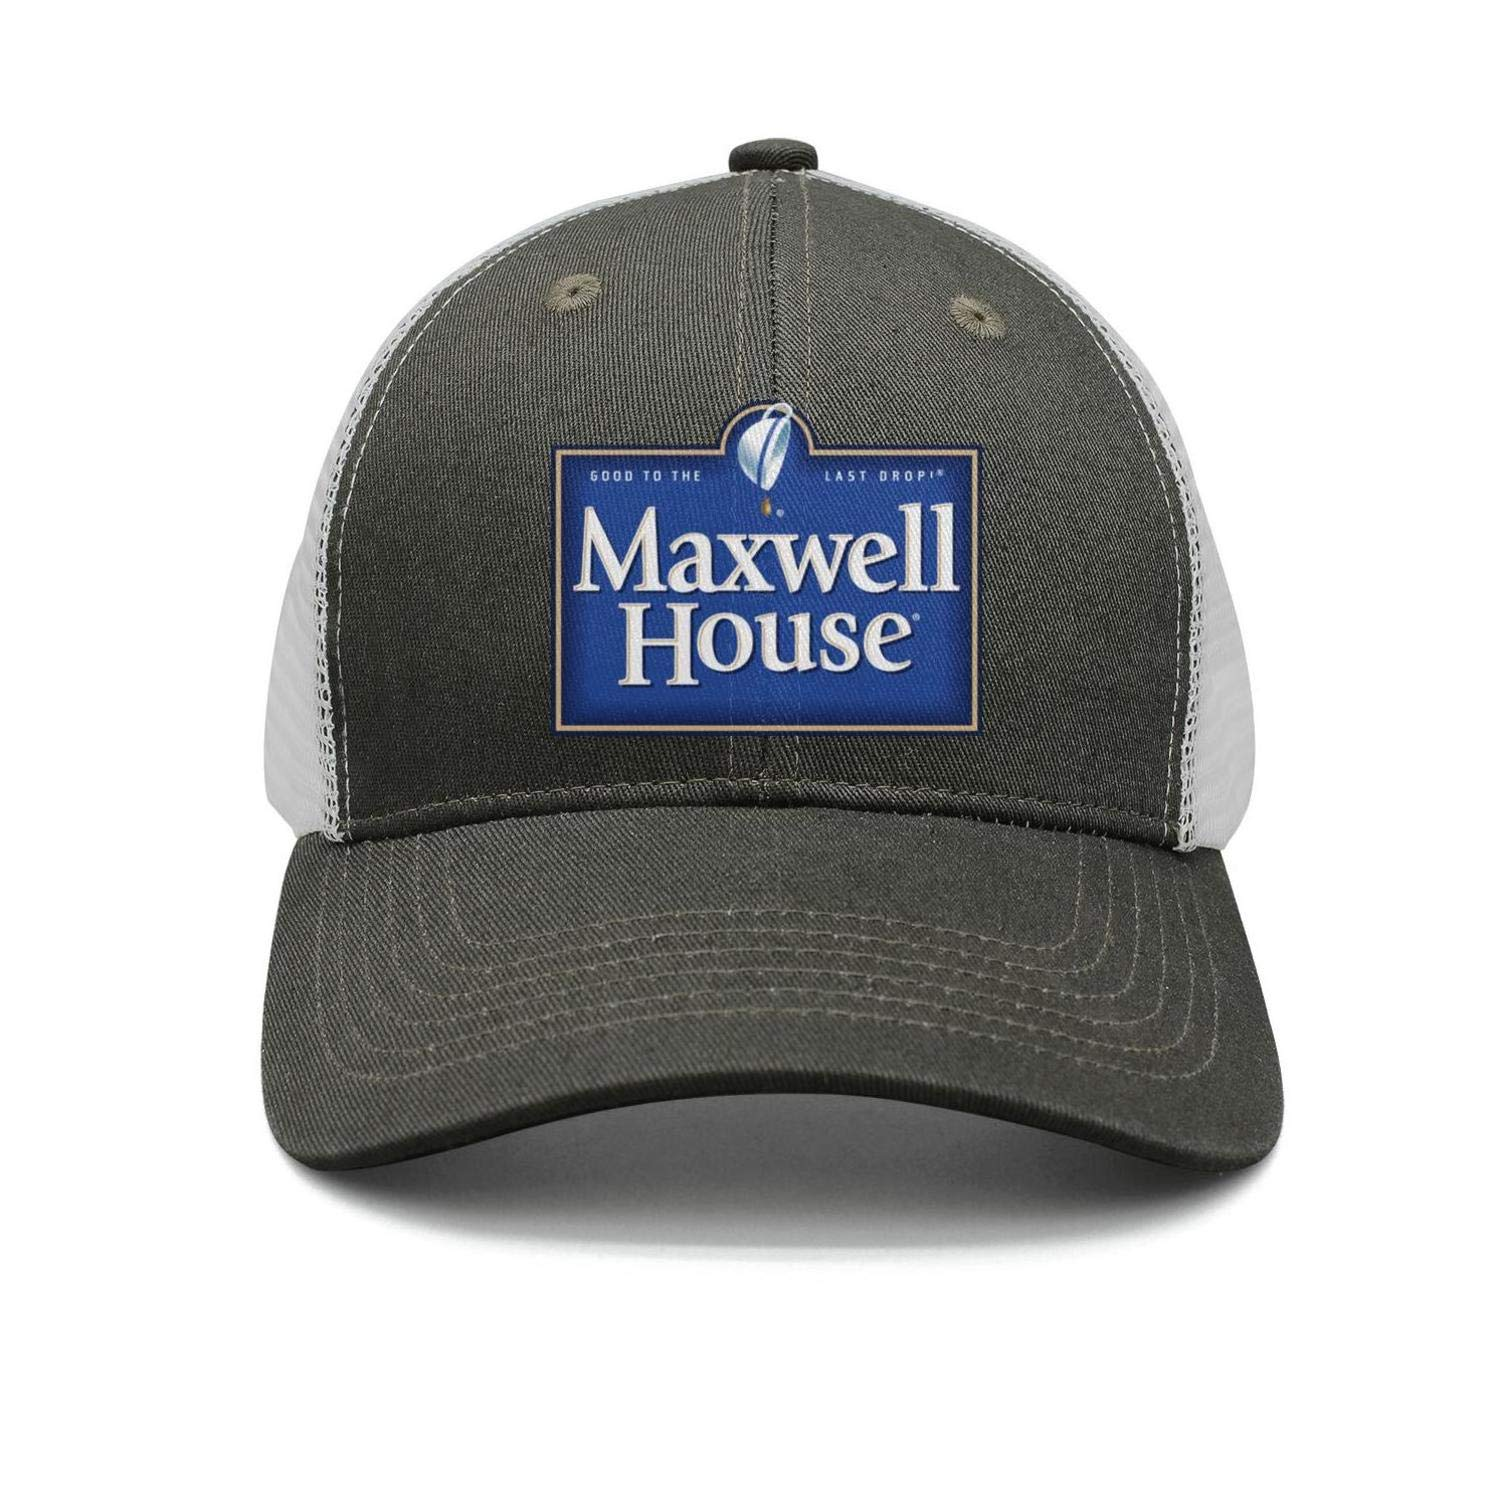 Unisex Cool Cap Flat One Size-Maxwell-House-Snapback Cotton Hat Relaxed